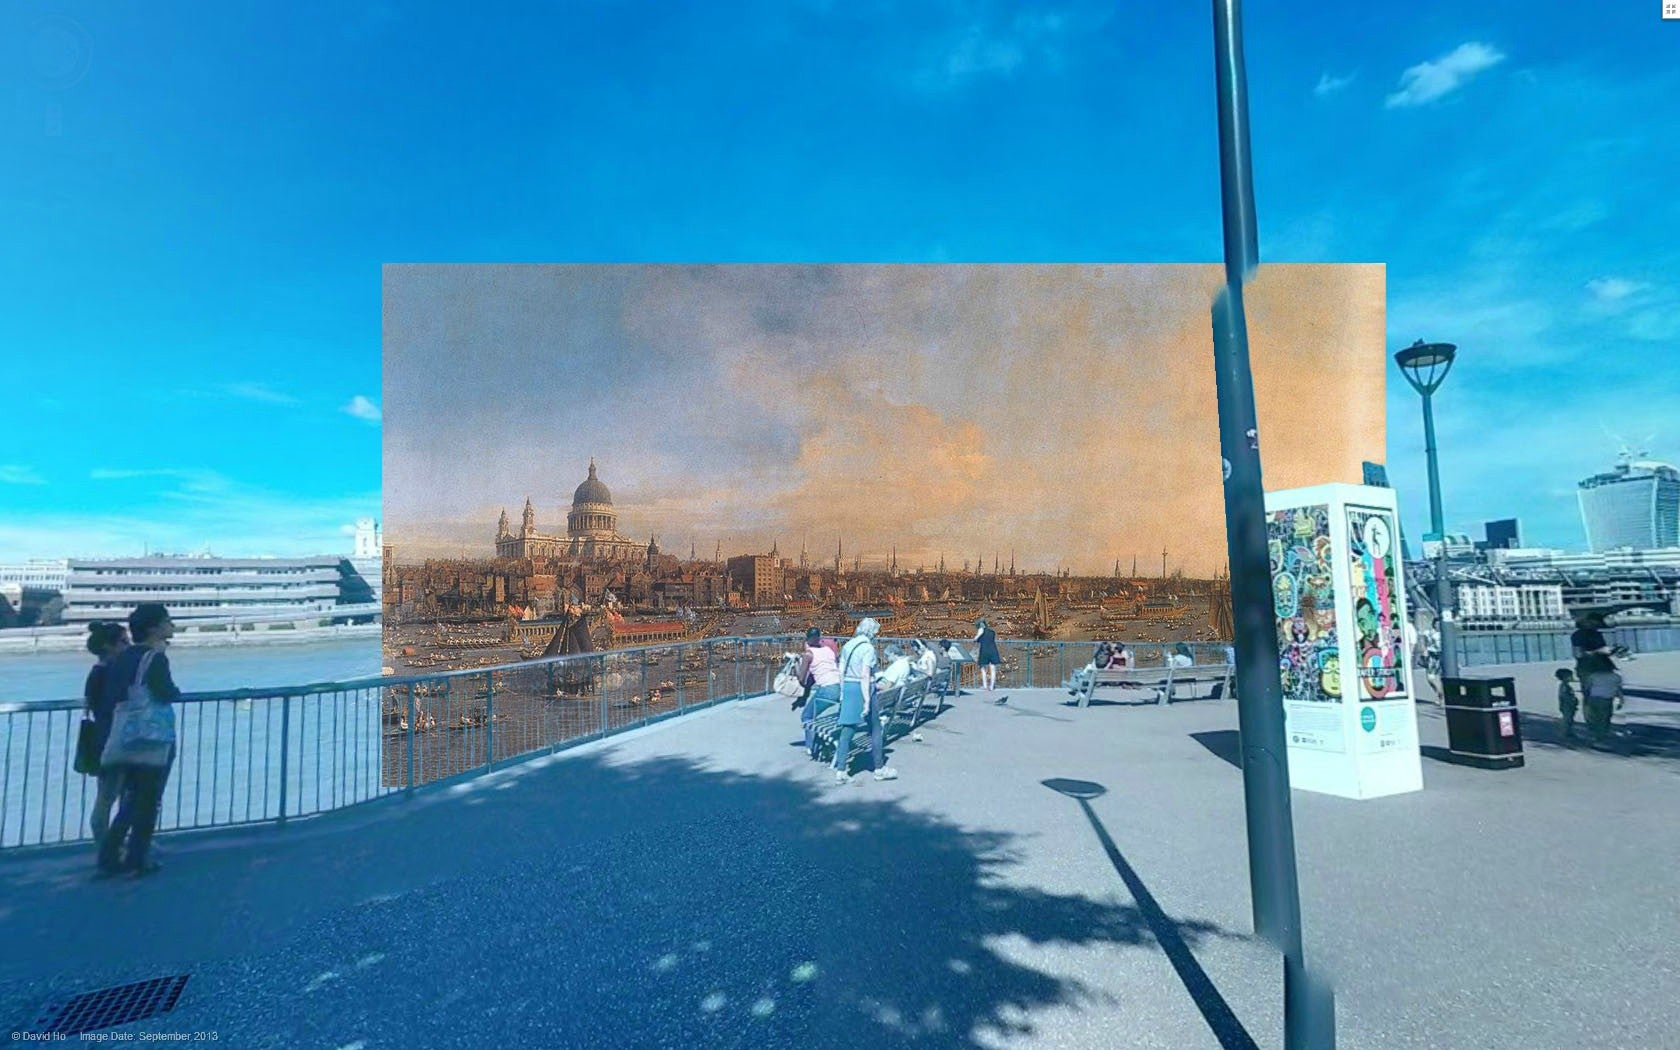 Impressive images mix classic paintings and modern London street views